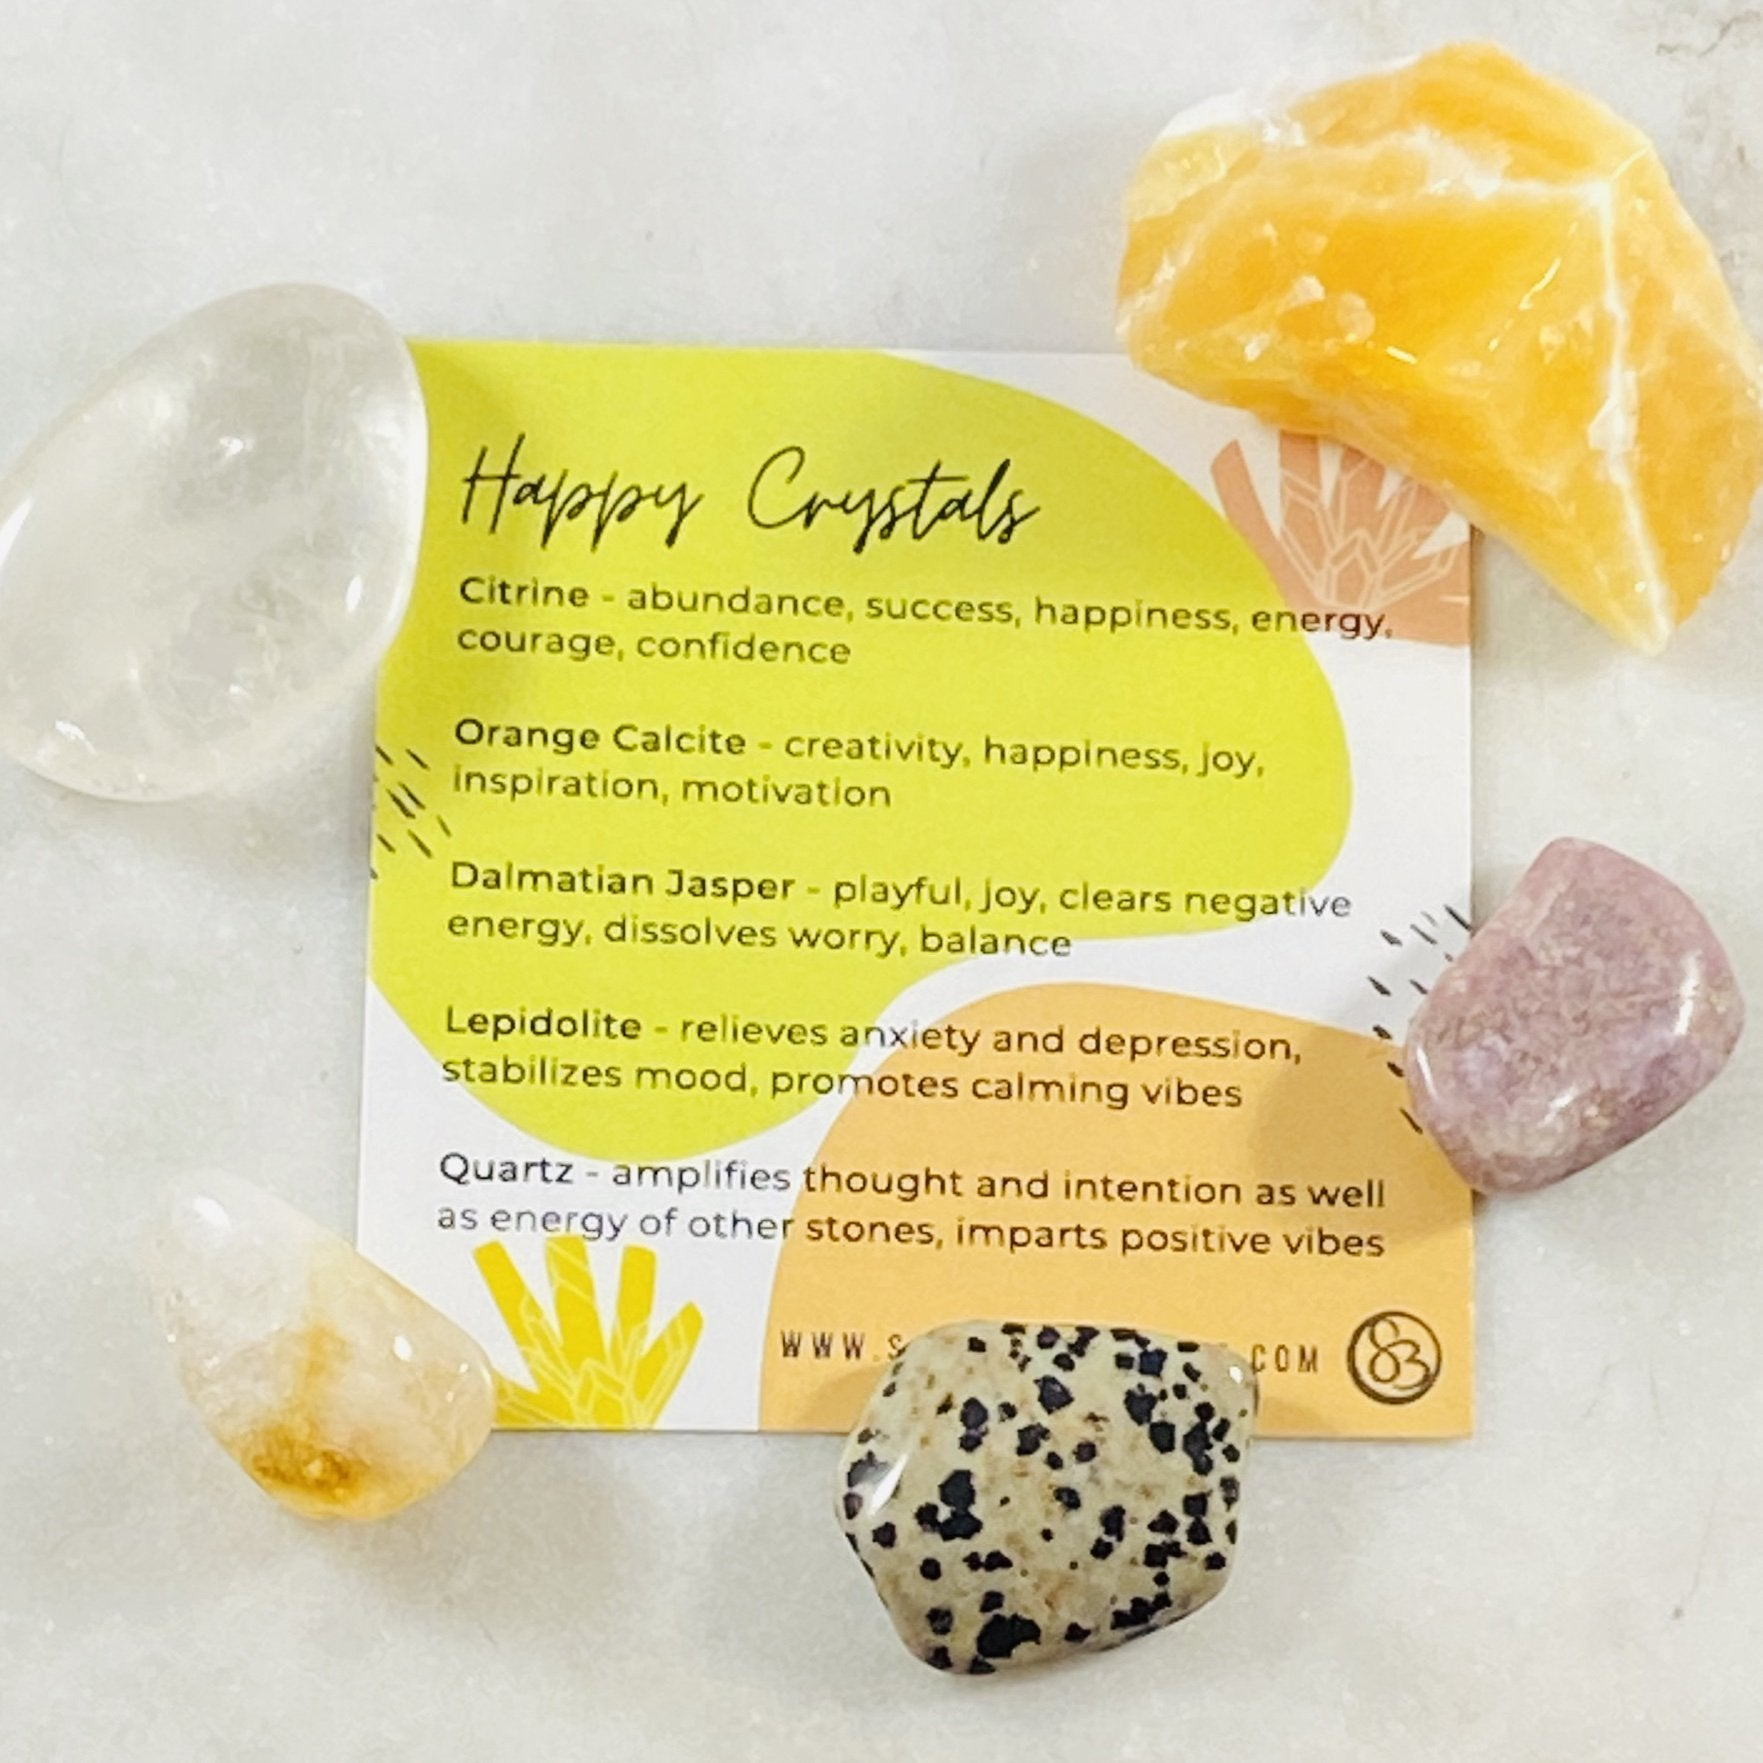 Healing crystals for happiness by Sarah Belle